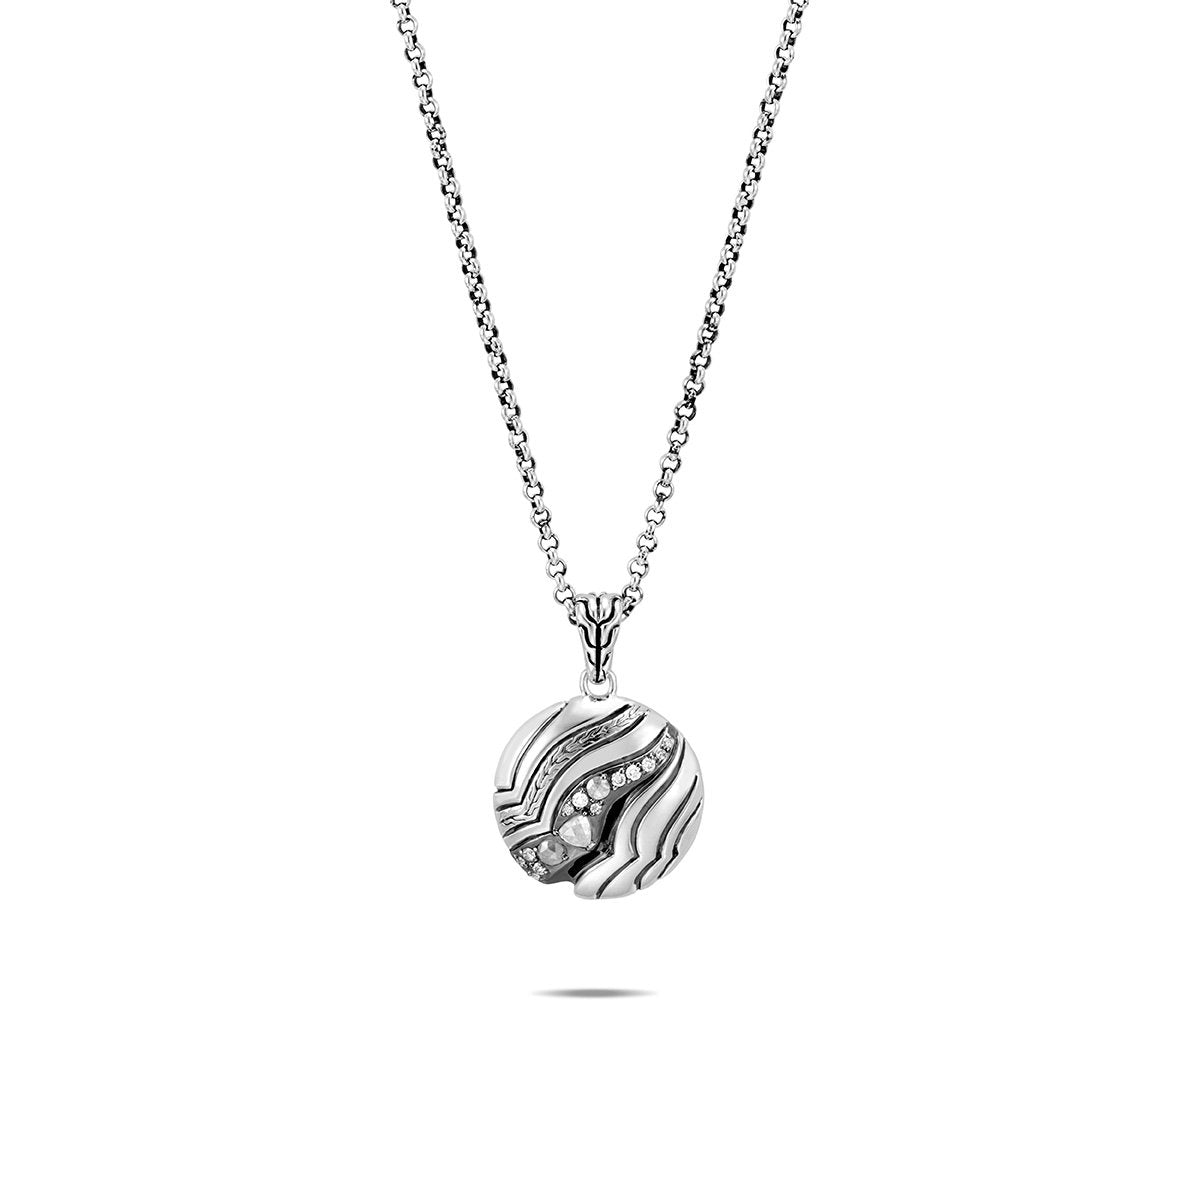 John Hardy Lahar Sterling Silver Pendant with Grey and White Diamonds